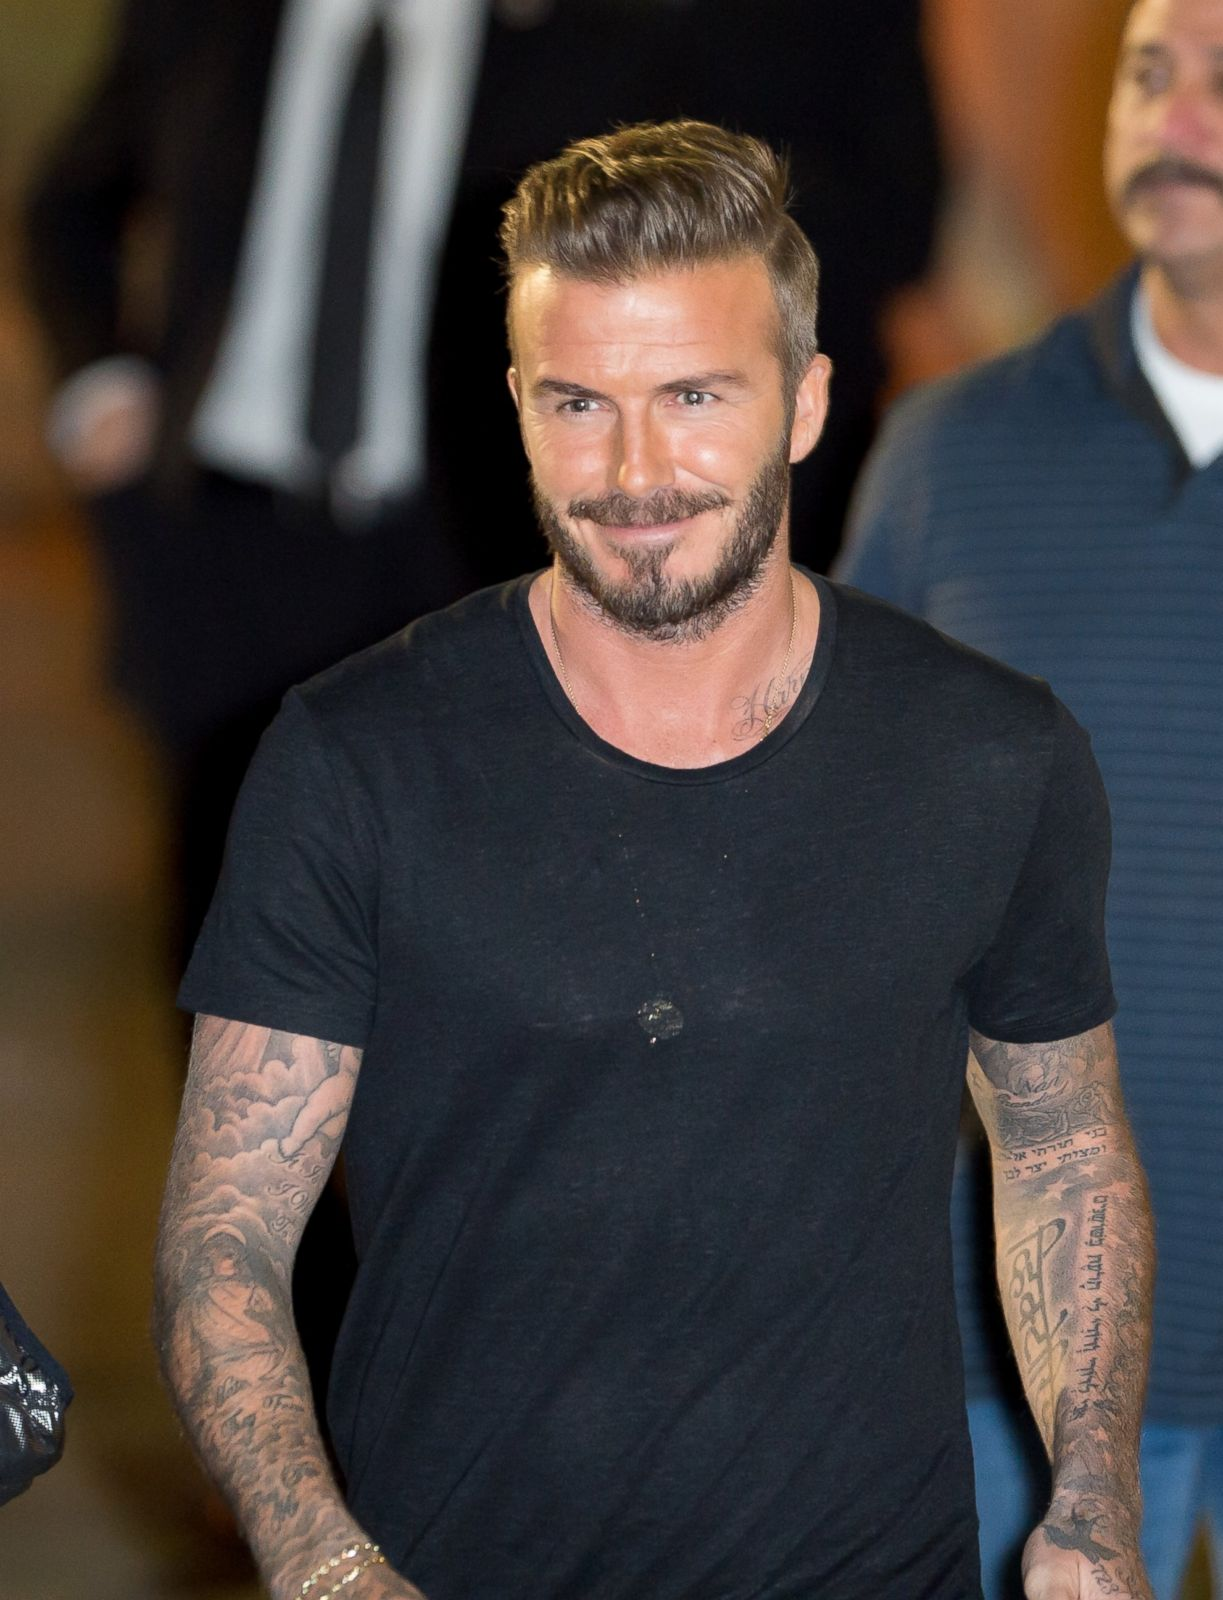 David Beckham Picture January Top Celebrity Pictures Abc News